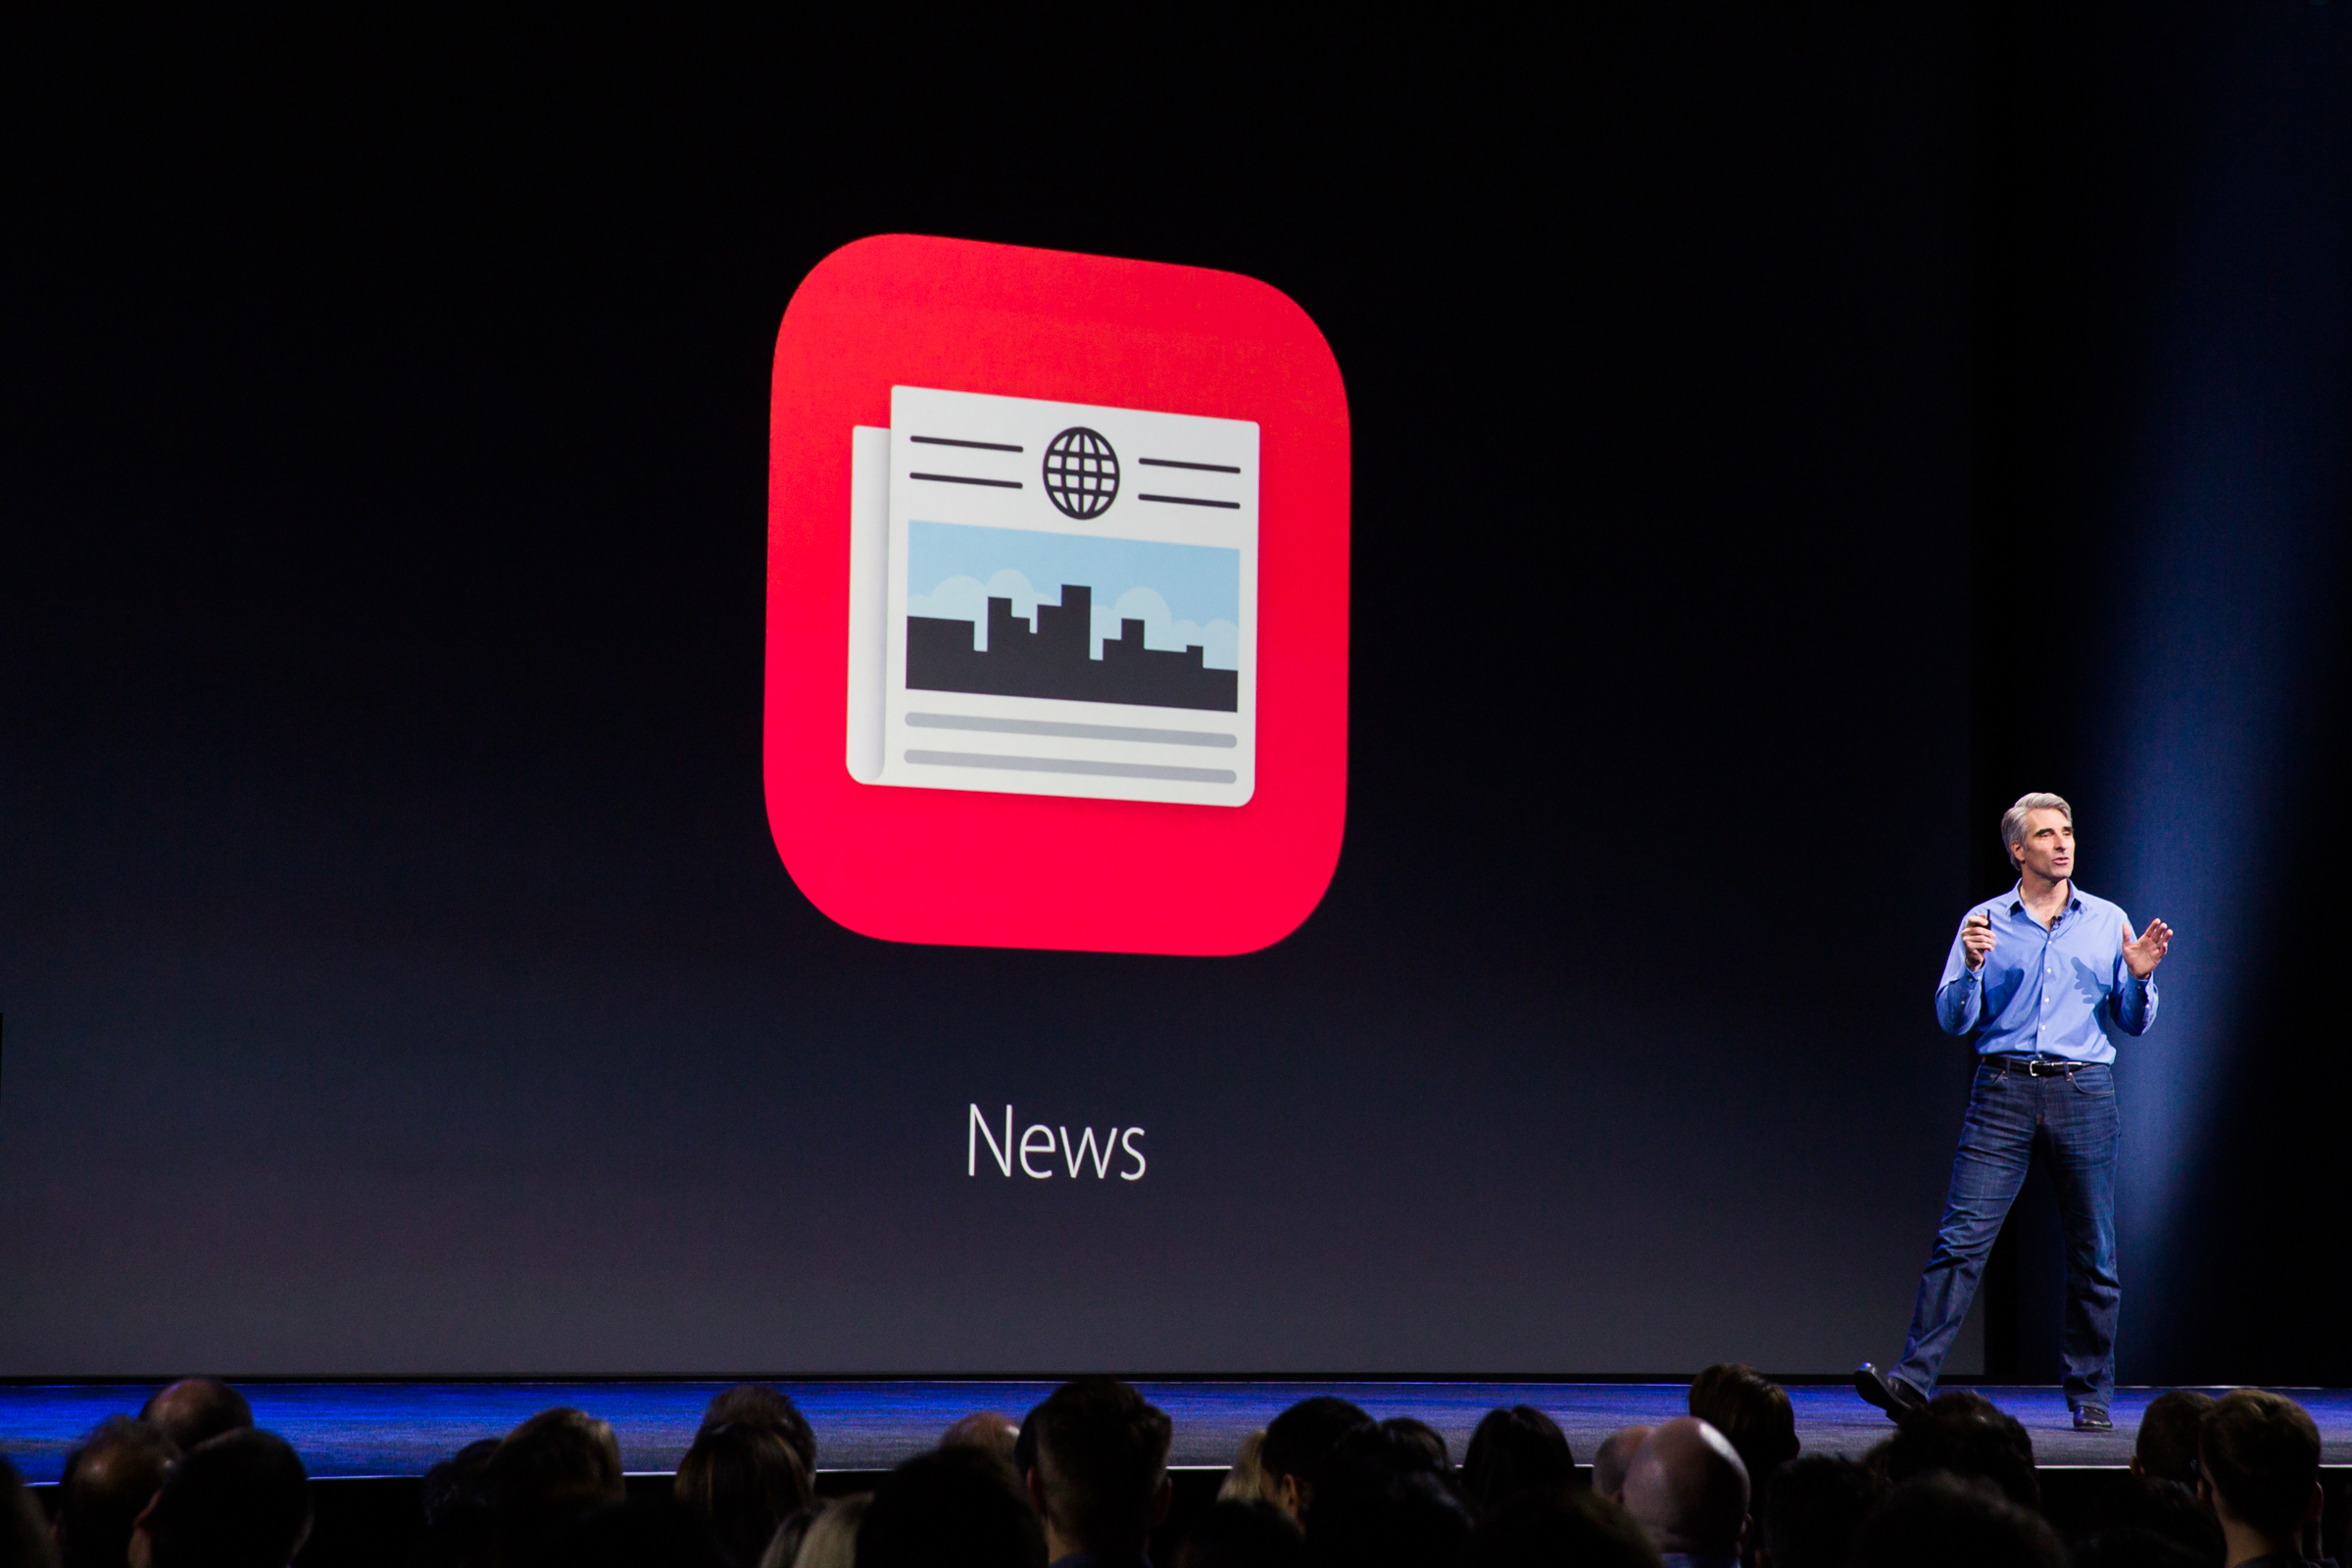 Apple News Tuto : lapplication News sur son iPhone ou iPad, cest possible